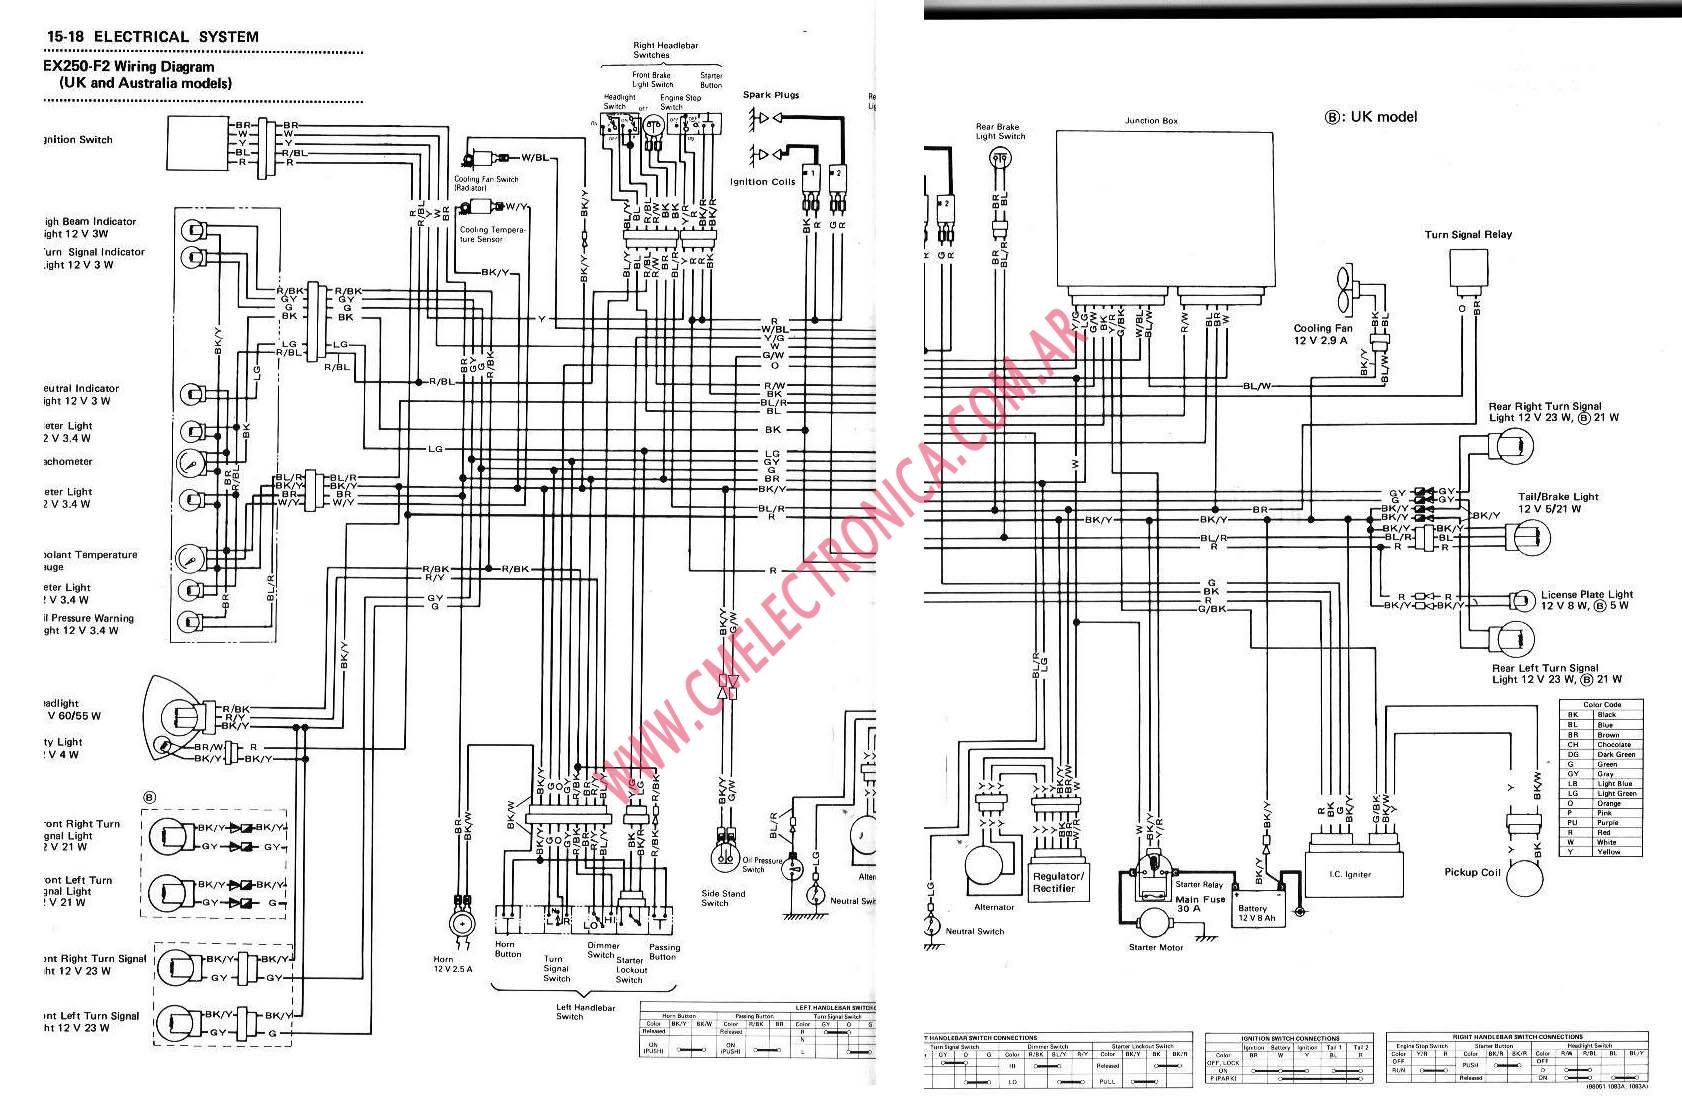 Wiring Diagram 1995 Kawasaki Bayou - Data Wiring Diagram on 1995 honda shadow wiring diagram, 1995 yamaha timberwolf wiring diagram, 1995 yamaha warrior wiring diagram, 1995 polaris magnum wiring diagram, 1995 honda rancher wiring diagram, 1995 polaris sportsman wiring diagram, 1995 harley davidson wiring diagram,